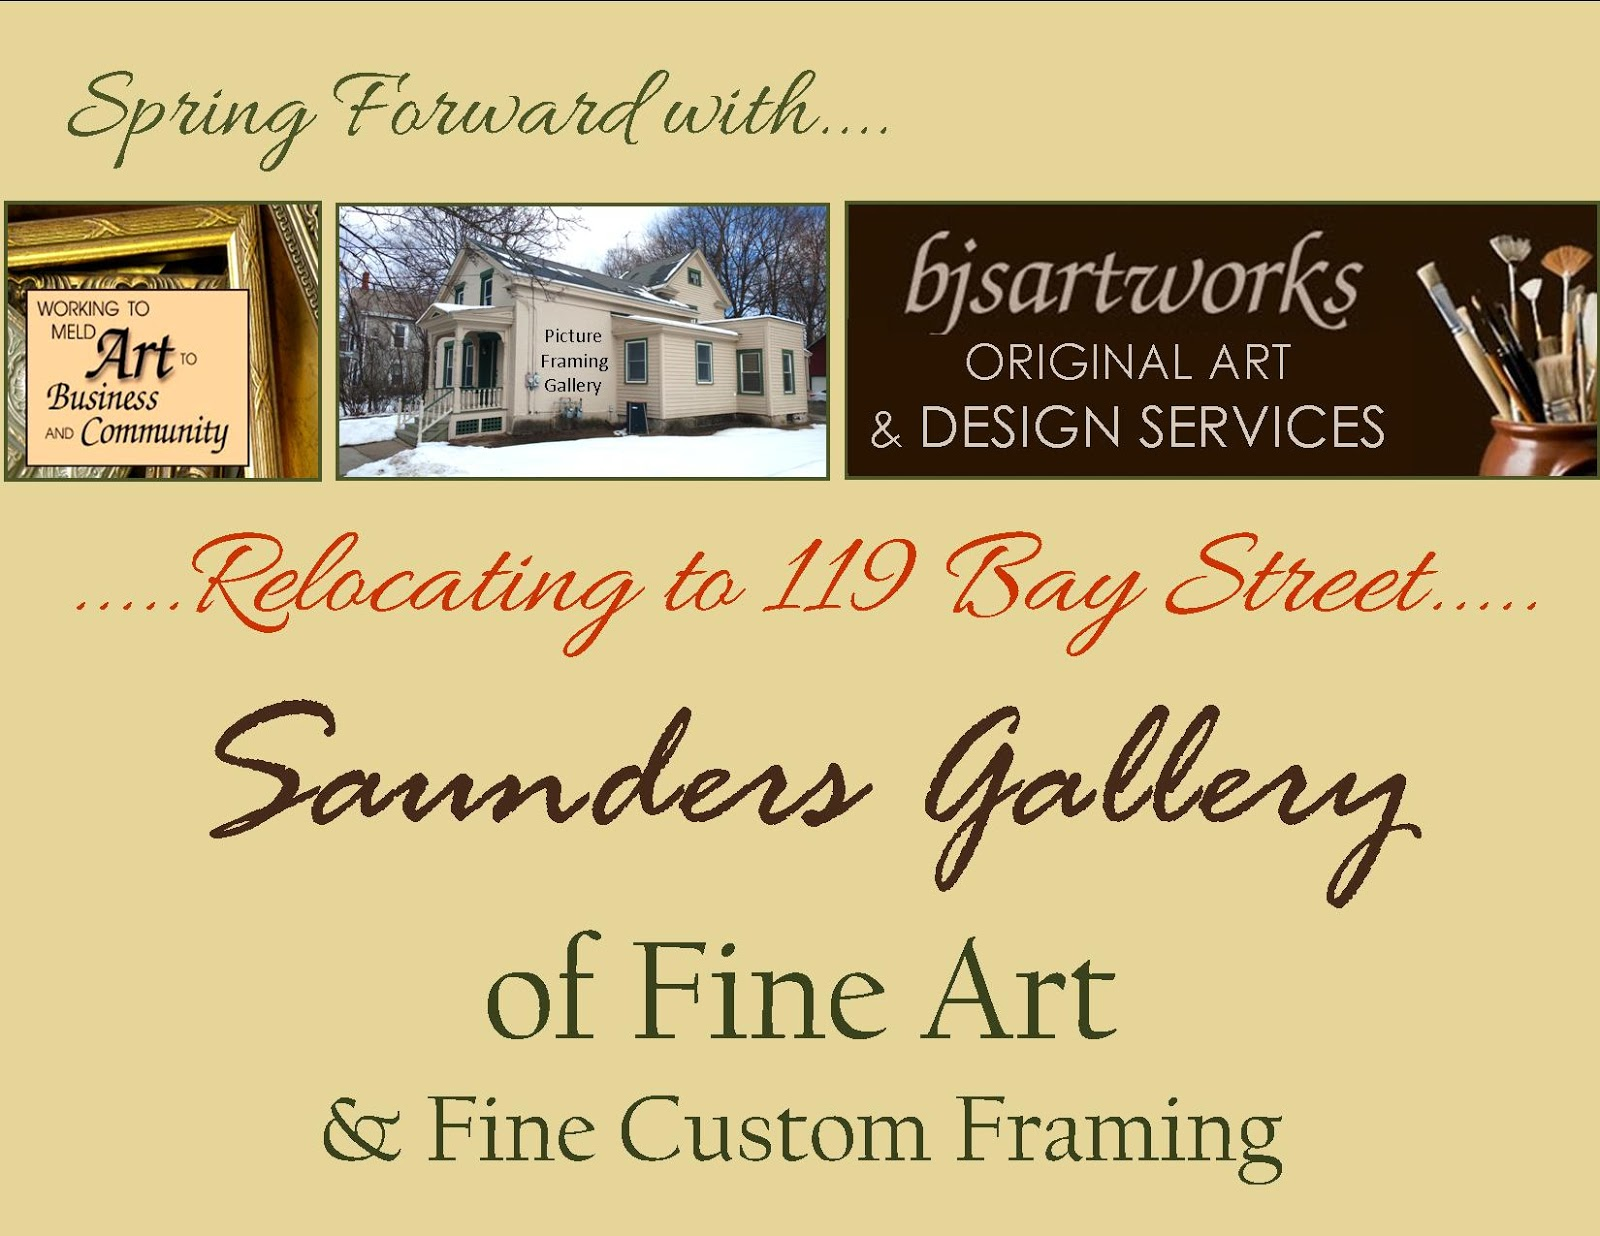 Saunders Gallery of Fine Art at bjsartworks ~ Fine Custom Framing